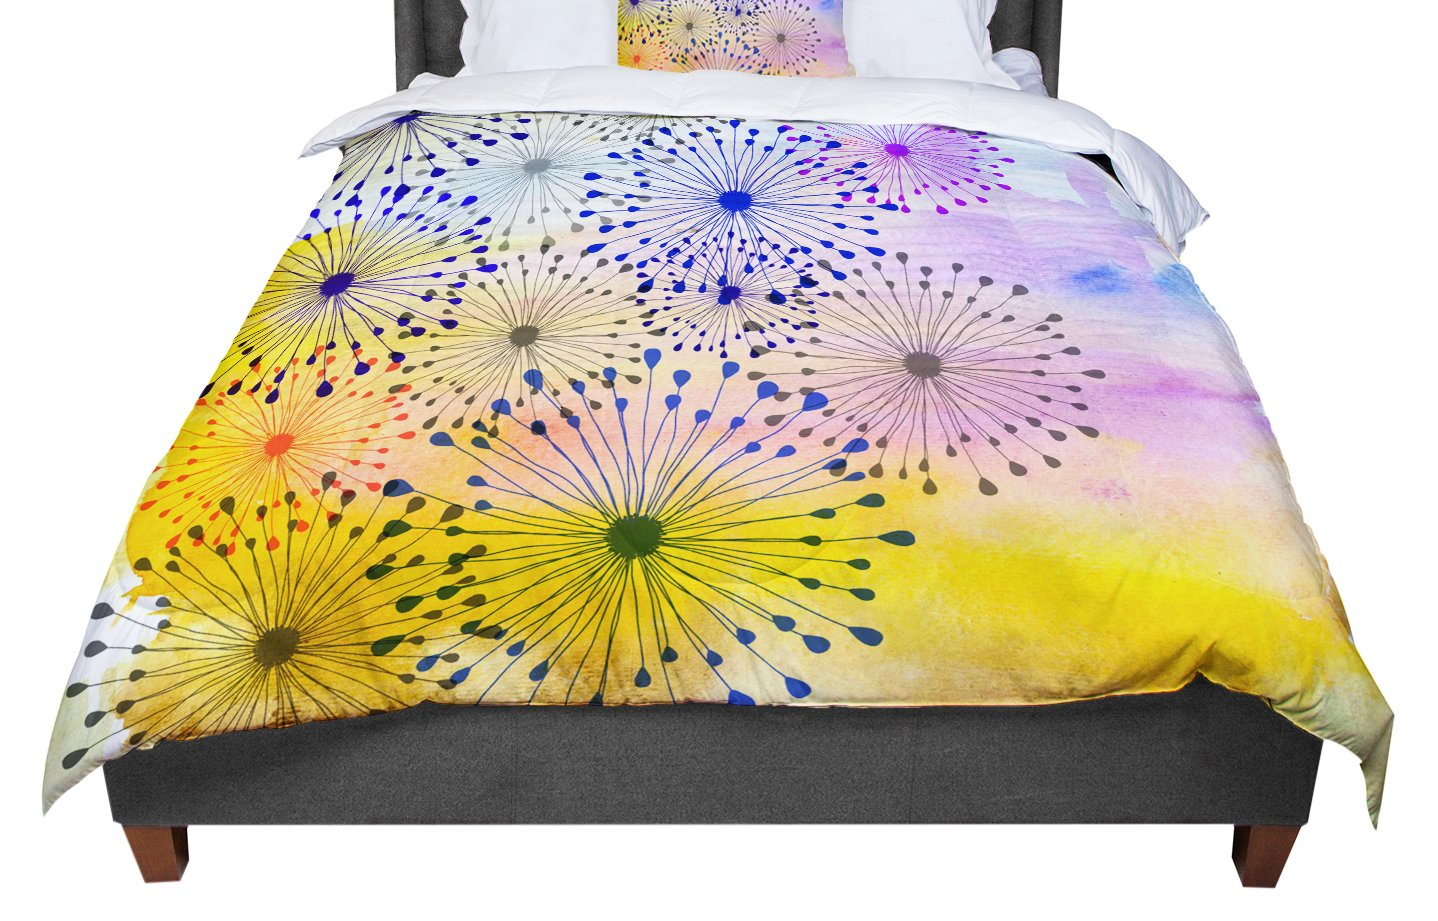 KESS InHouse Marianna Tankelevich Fuzzy Feeling Queen Comforter 88 X 88